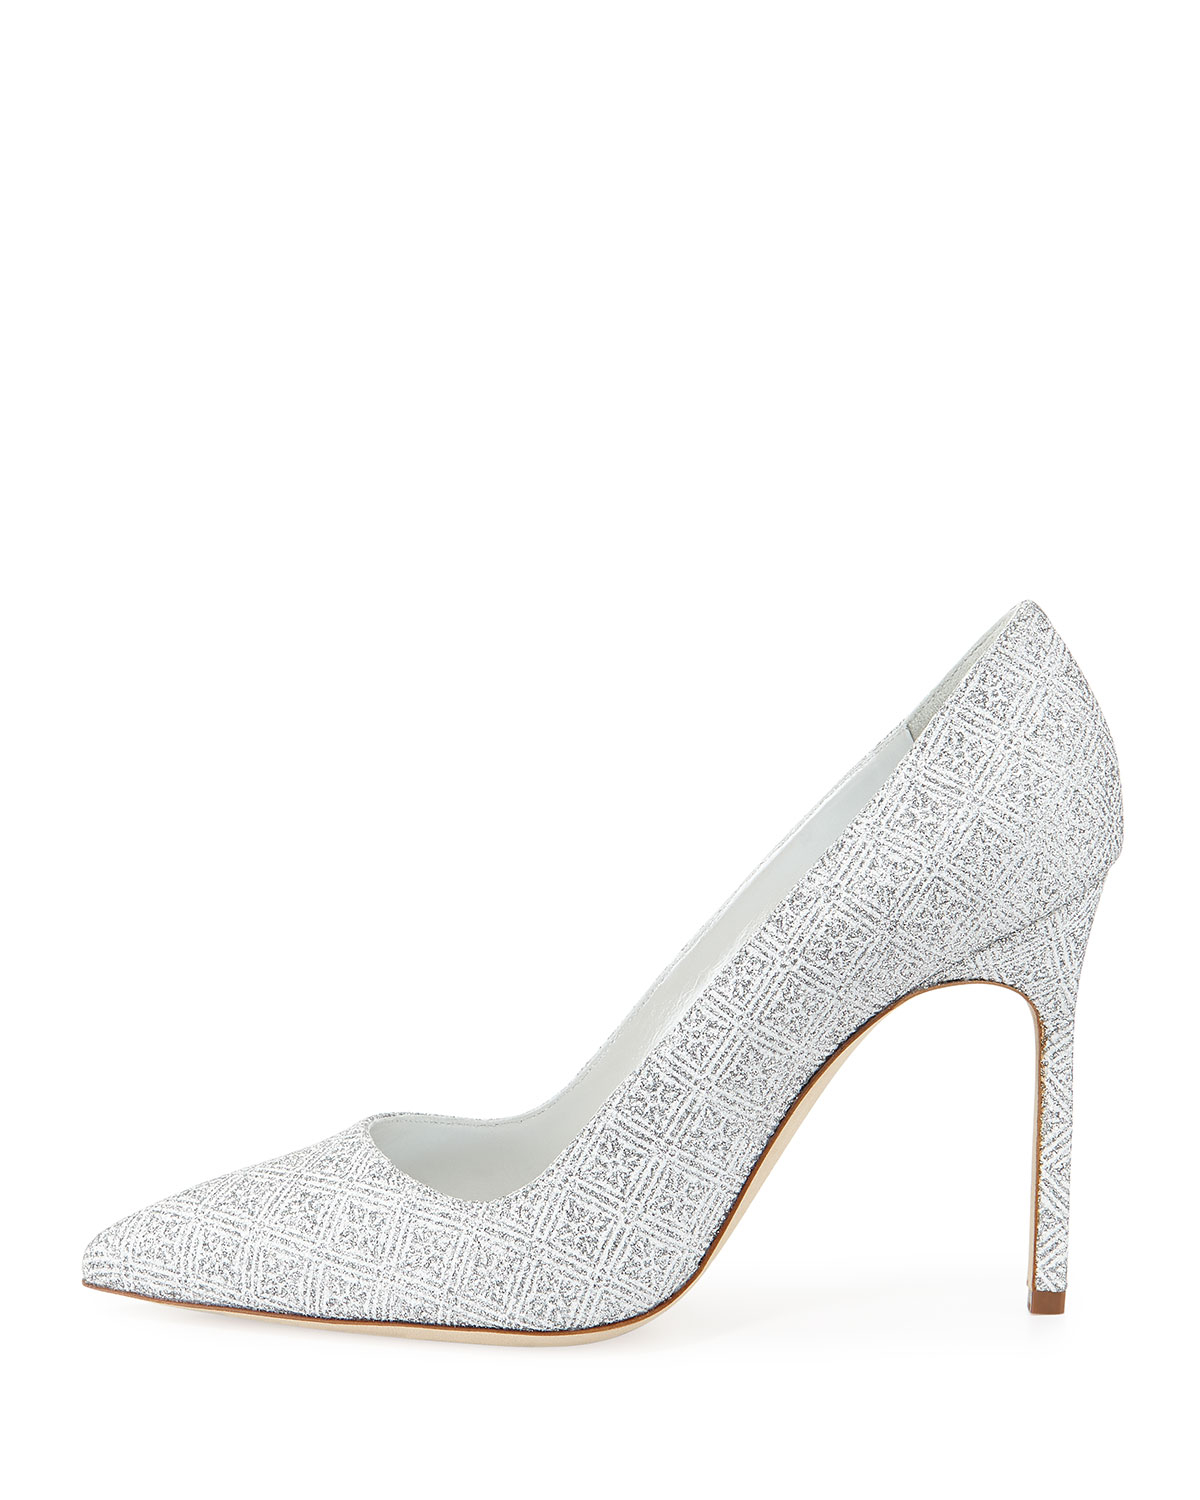 a6ee1ce211 Manolo Blahnik BB Snowflake Pointed-Toe Pumps in White - Lyst